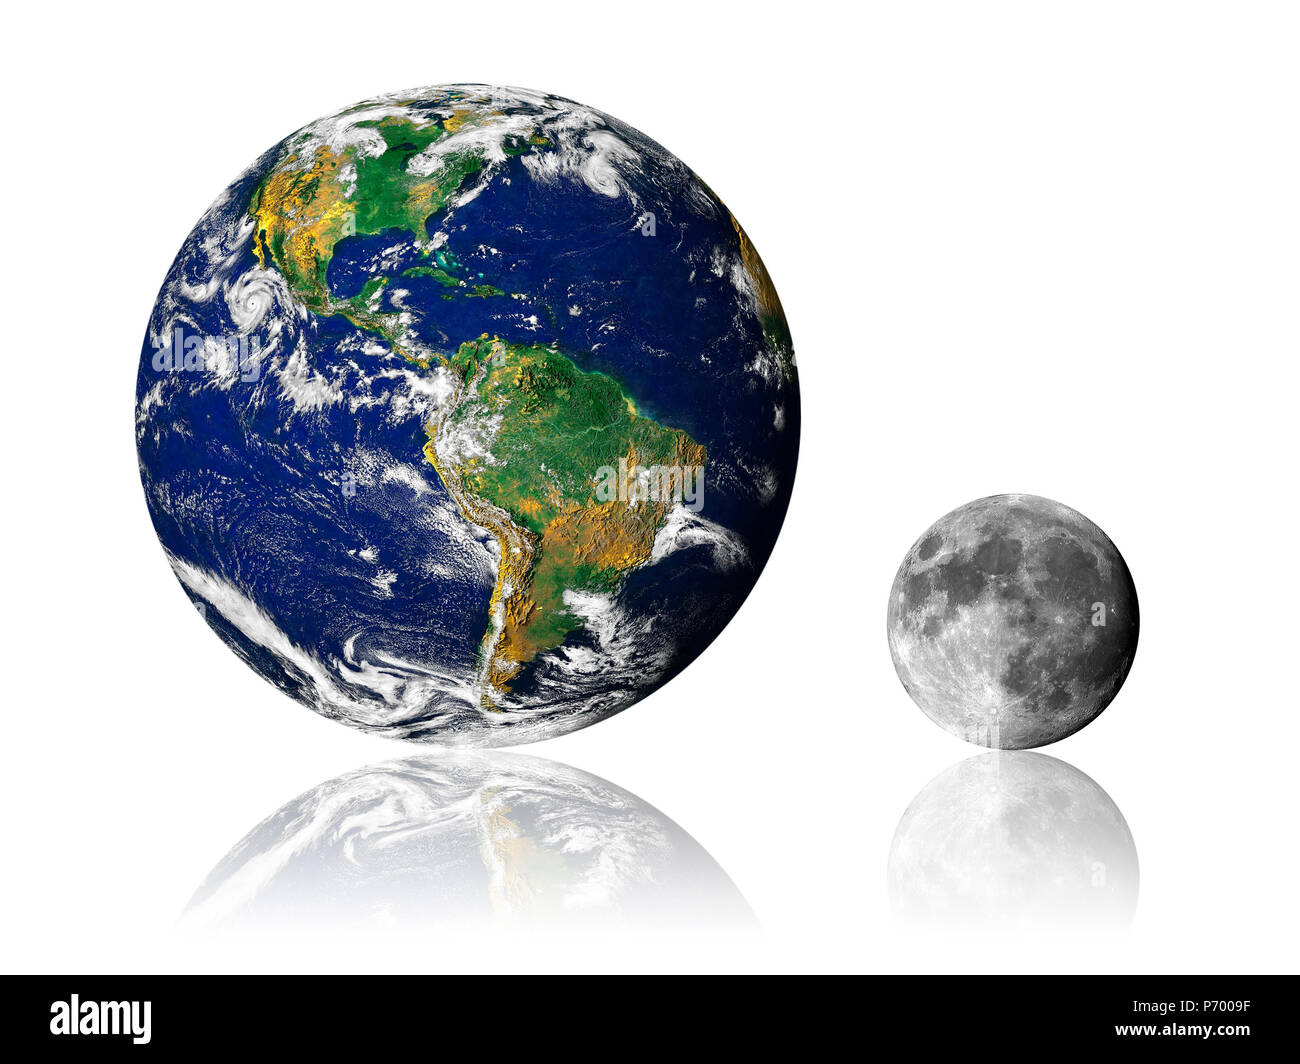 Earth and Moon with reflection on white background. Earth image provided by NASA - Stock Image